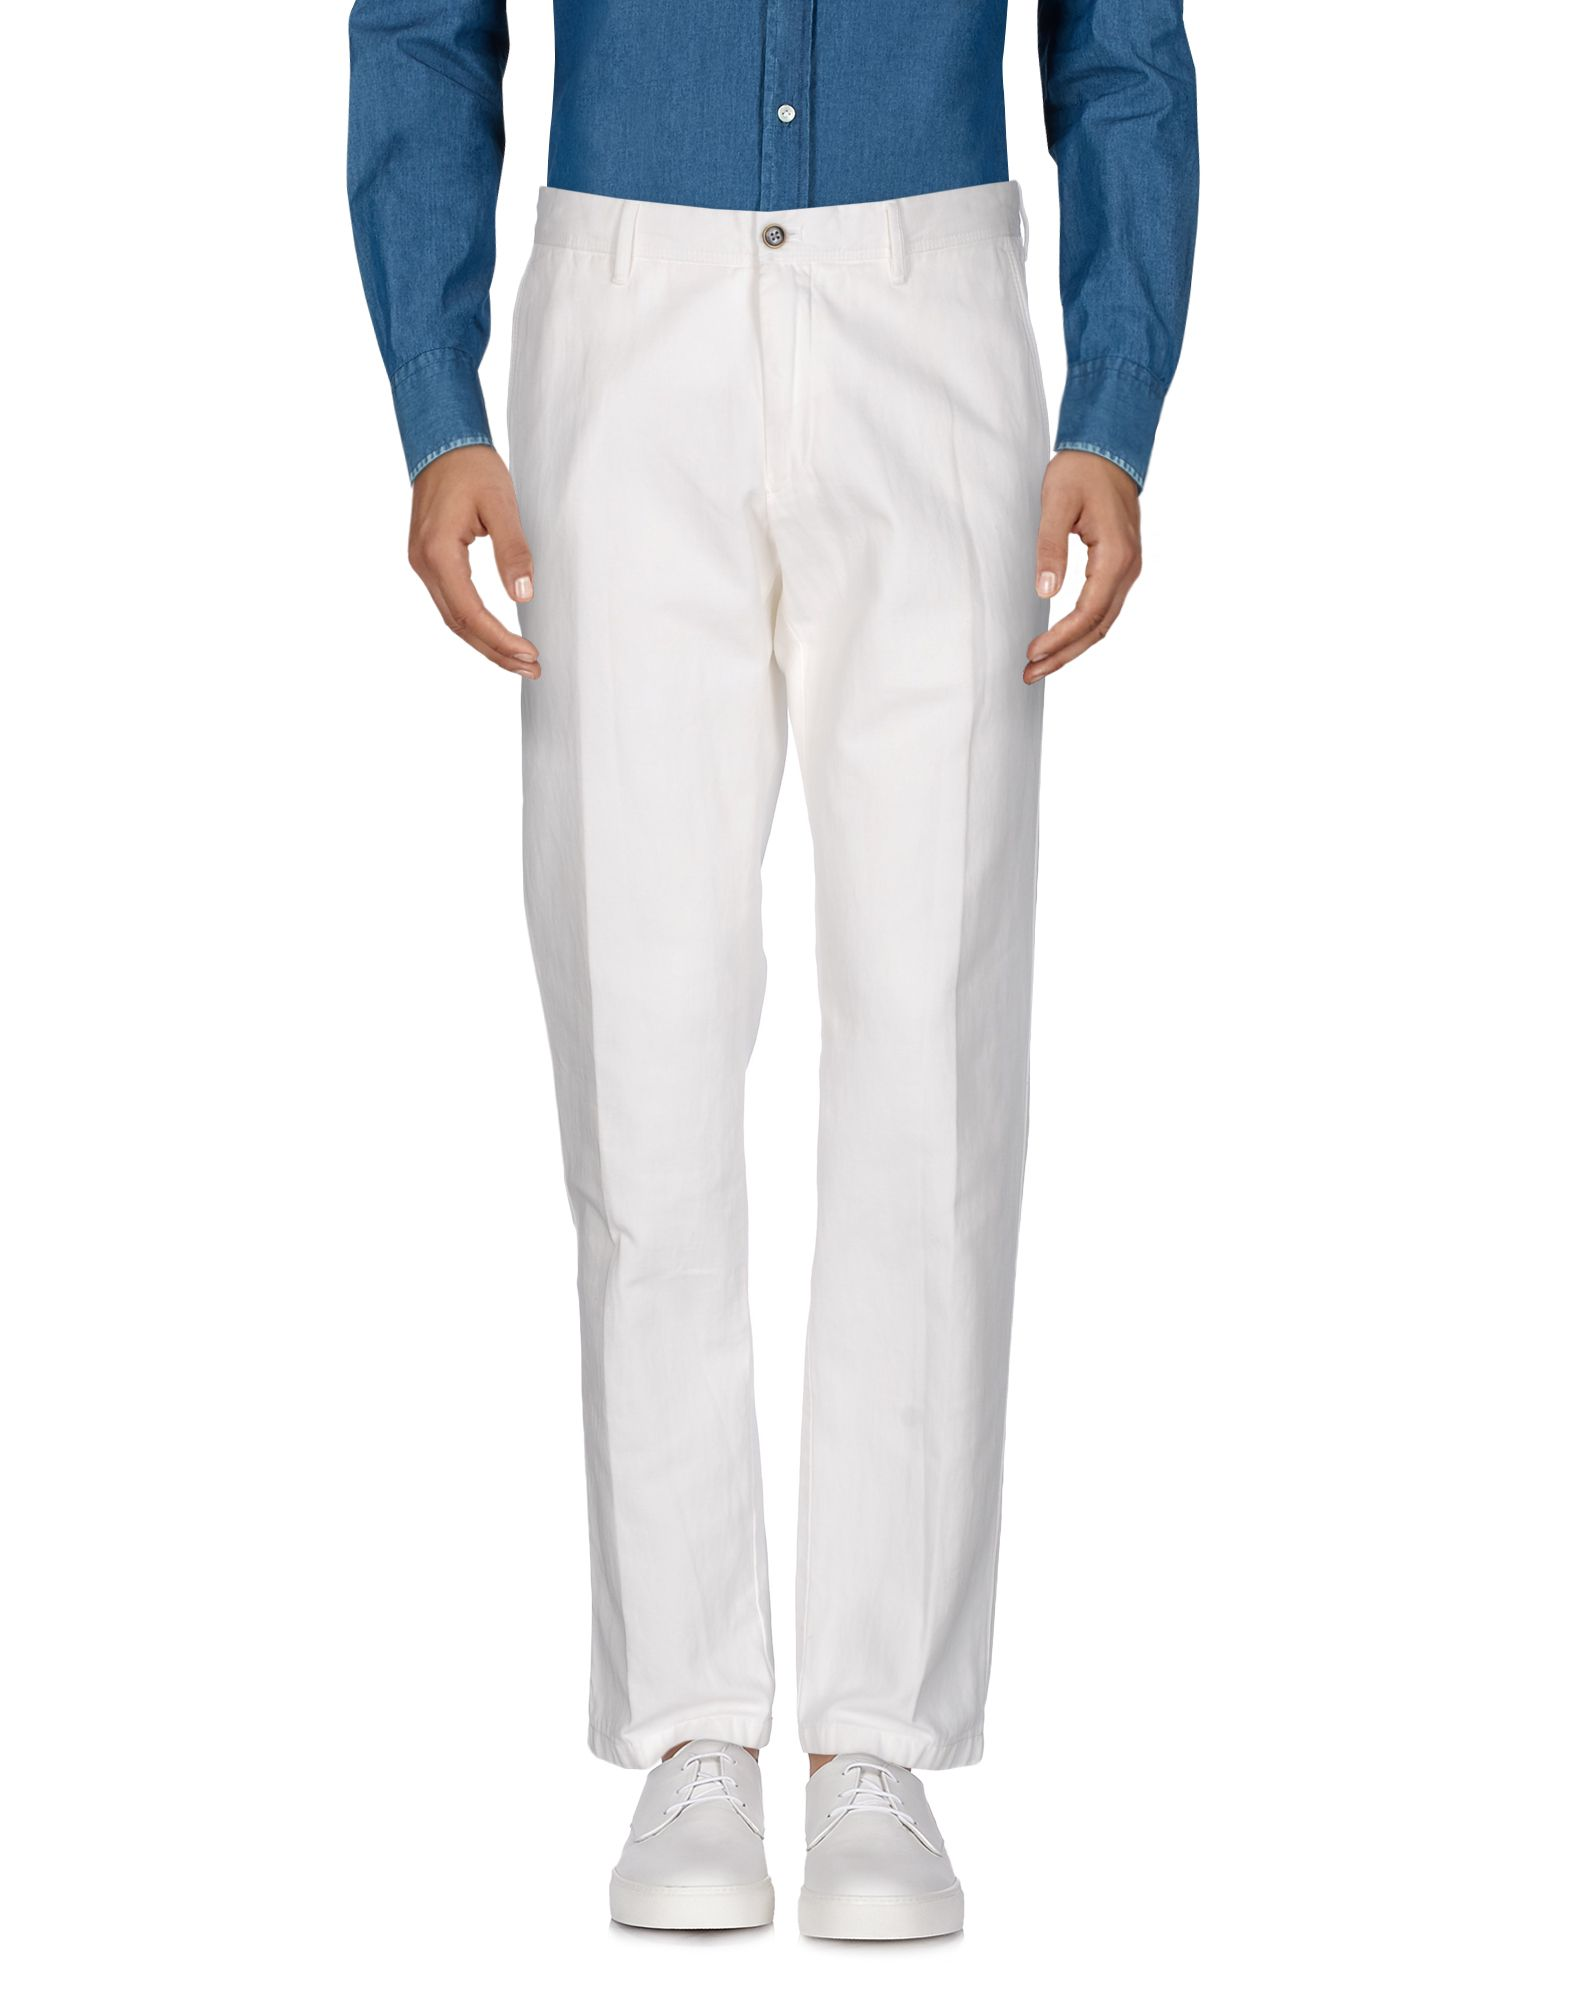 OSCAR JACOBSON Casual Pants in Ivory